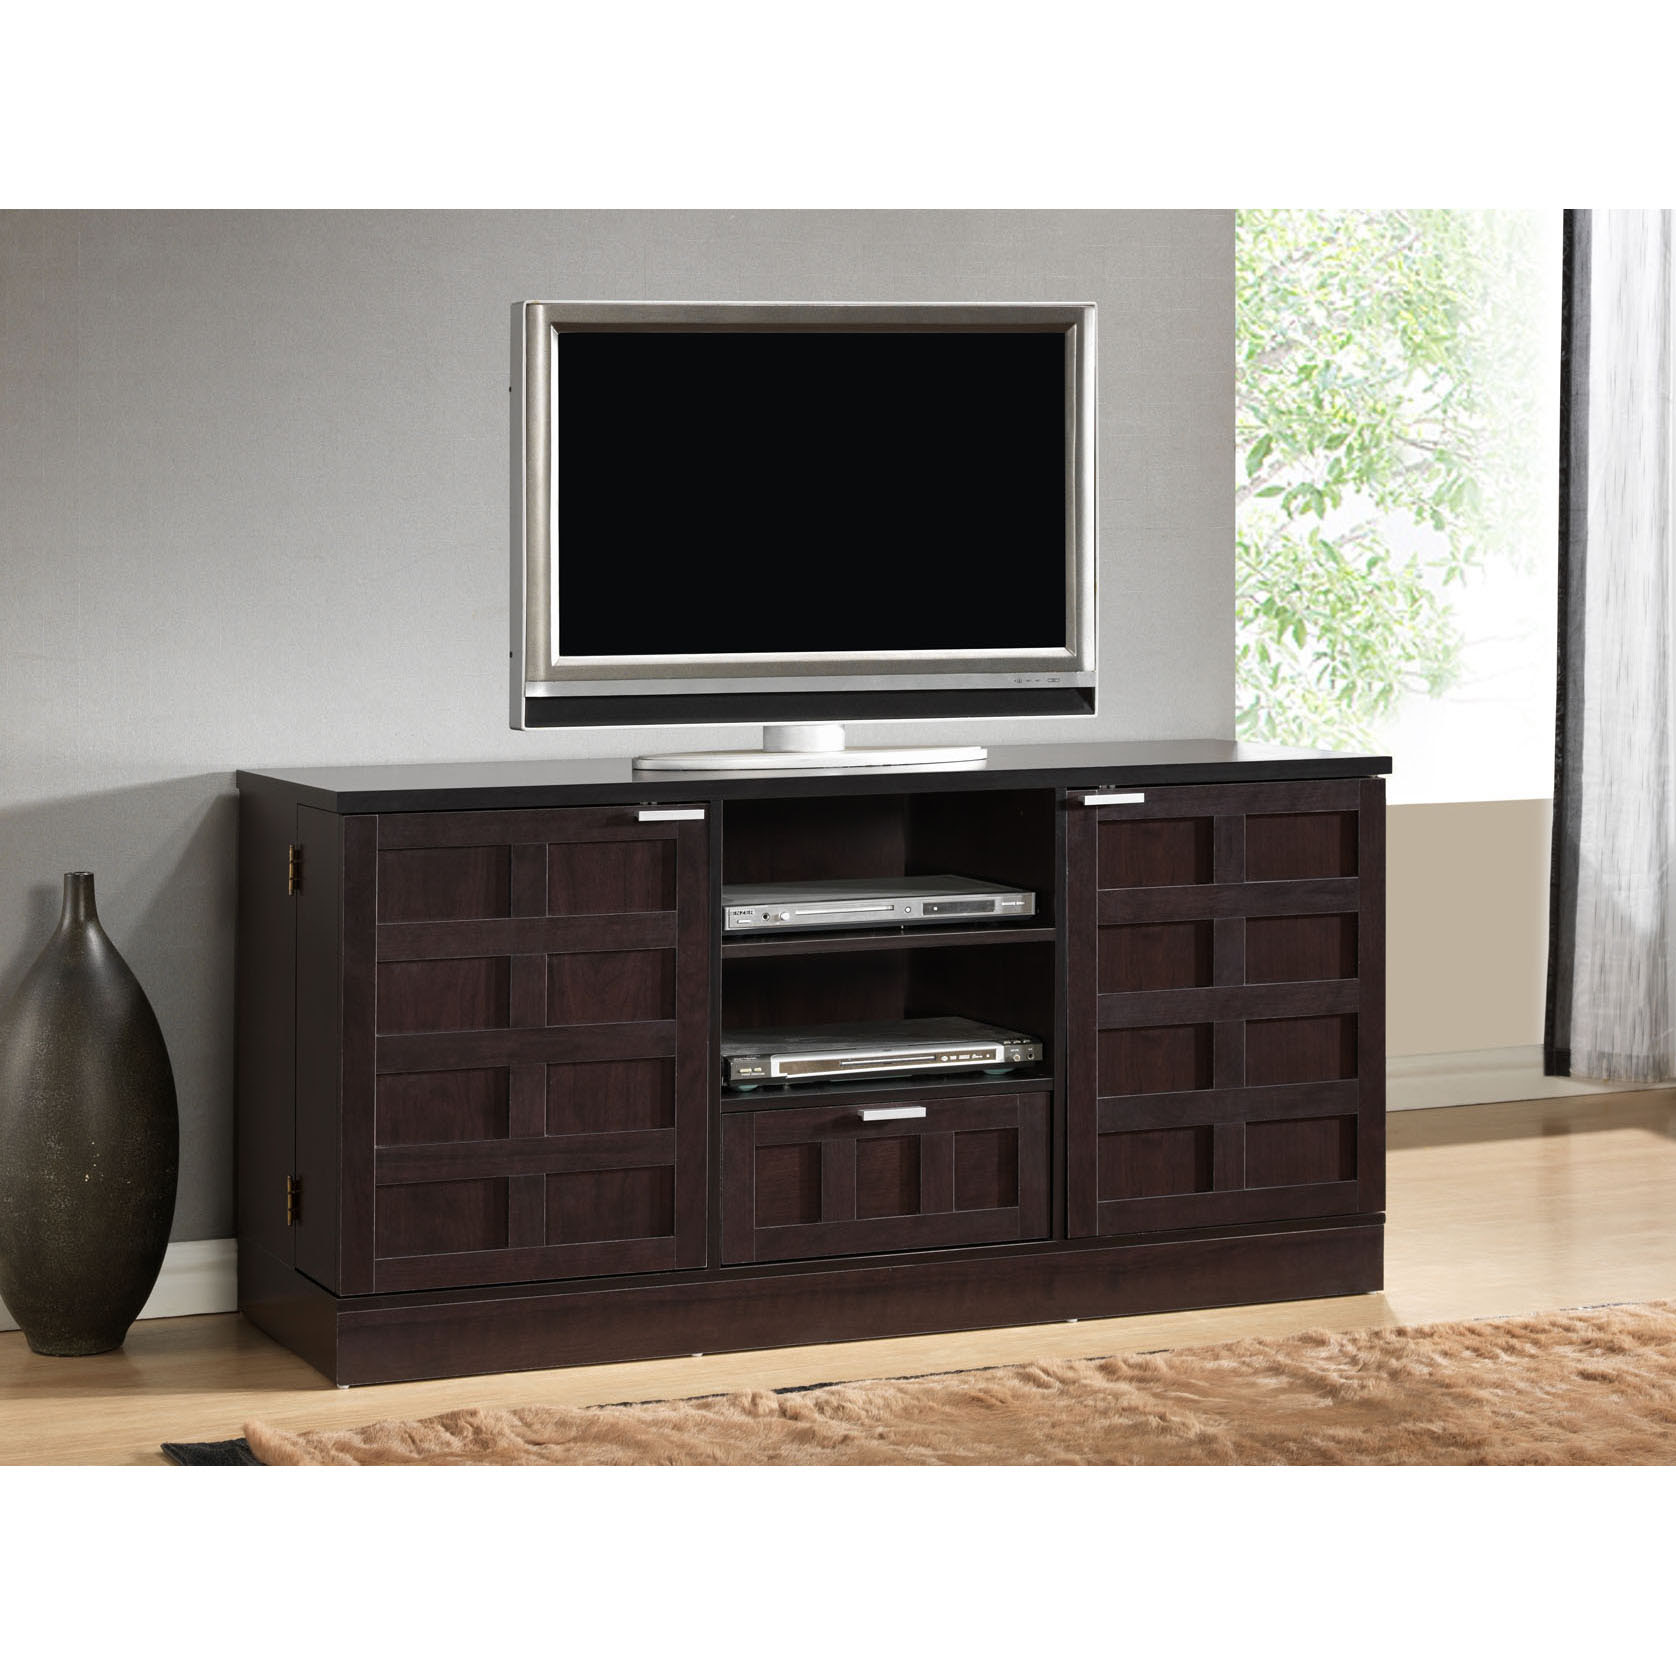 Long Media Cabinet for Your Living Room - HomesFeed